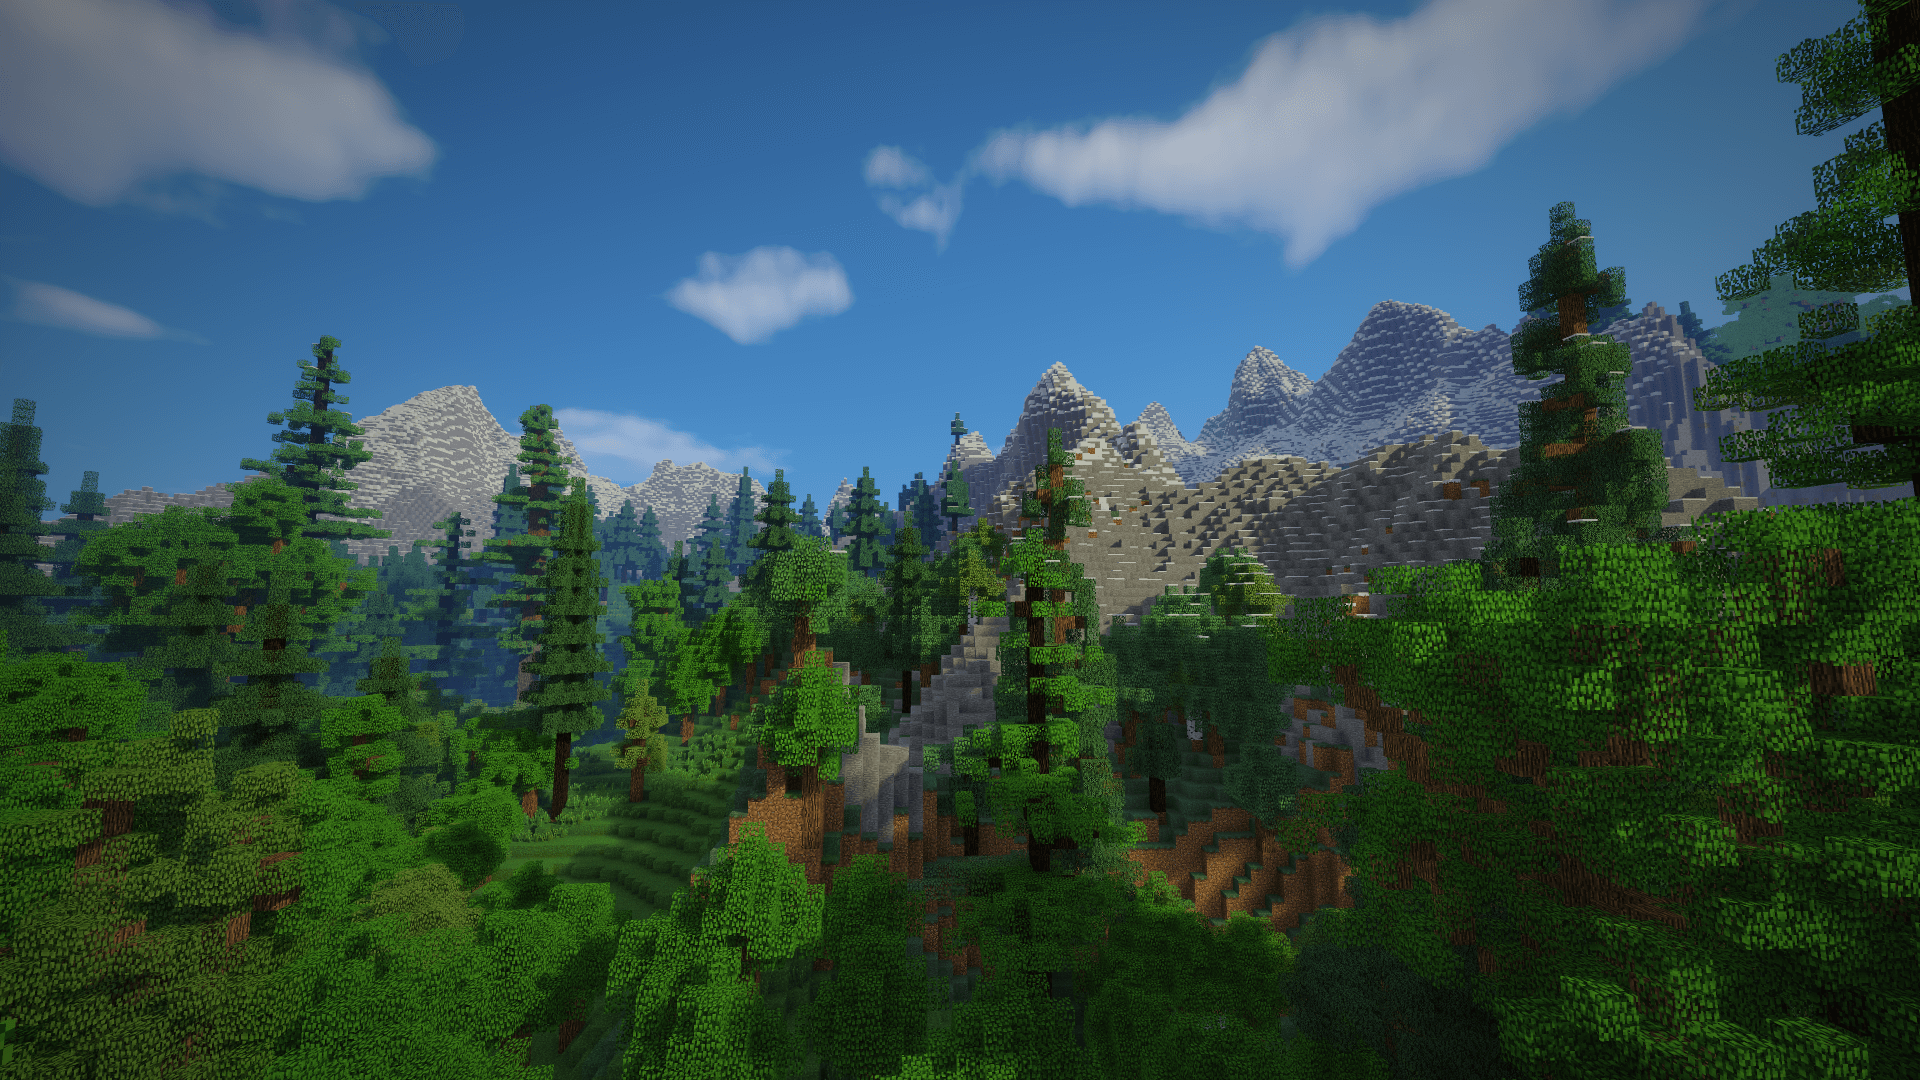 Shader Chocapic13's V6 - The-Minecraft.fr